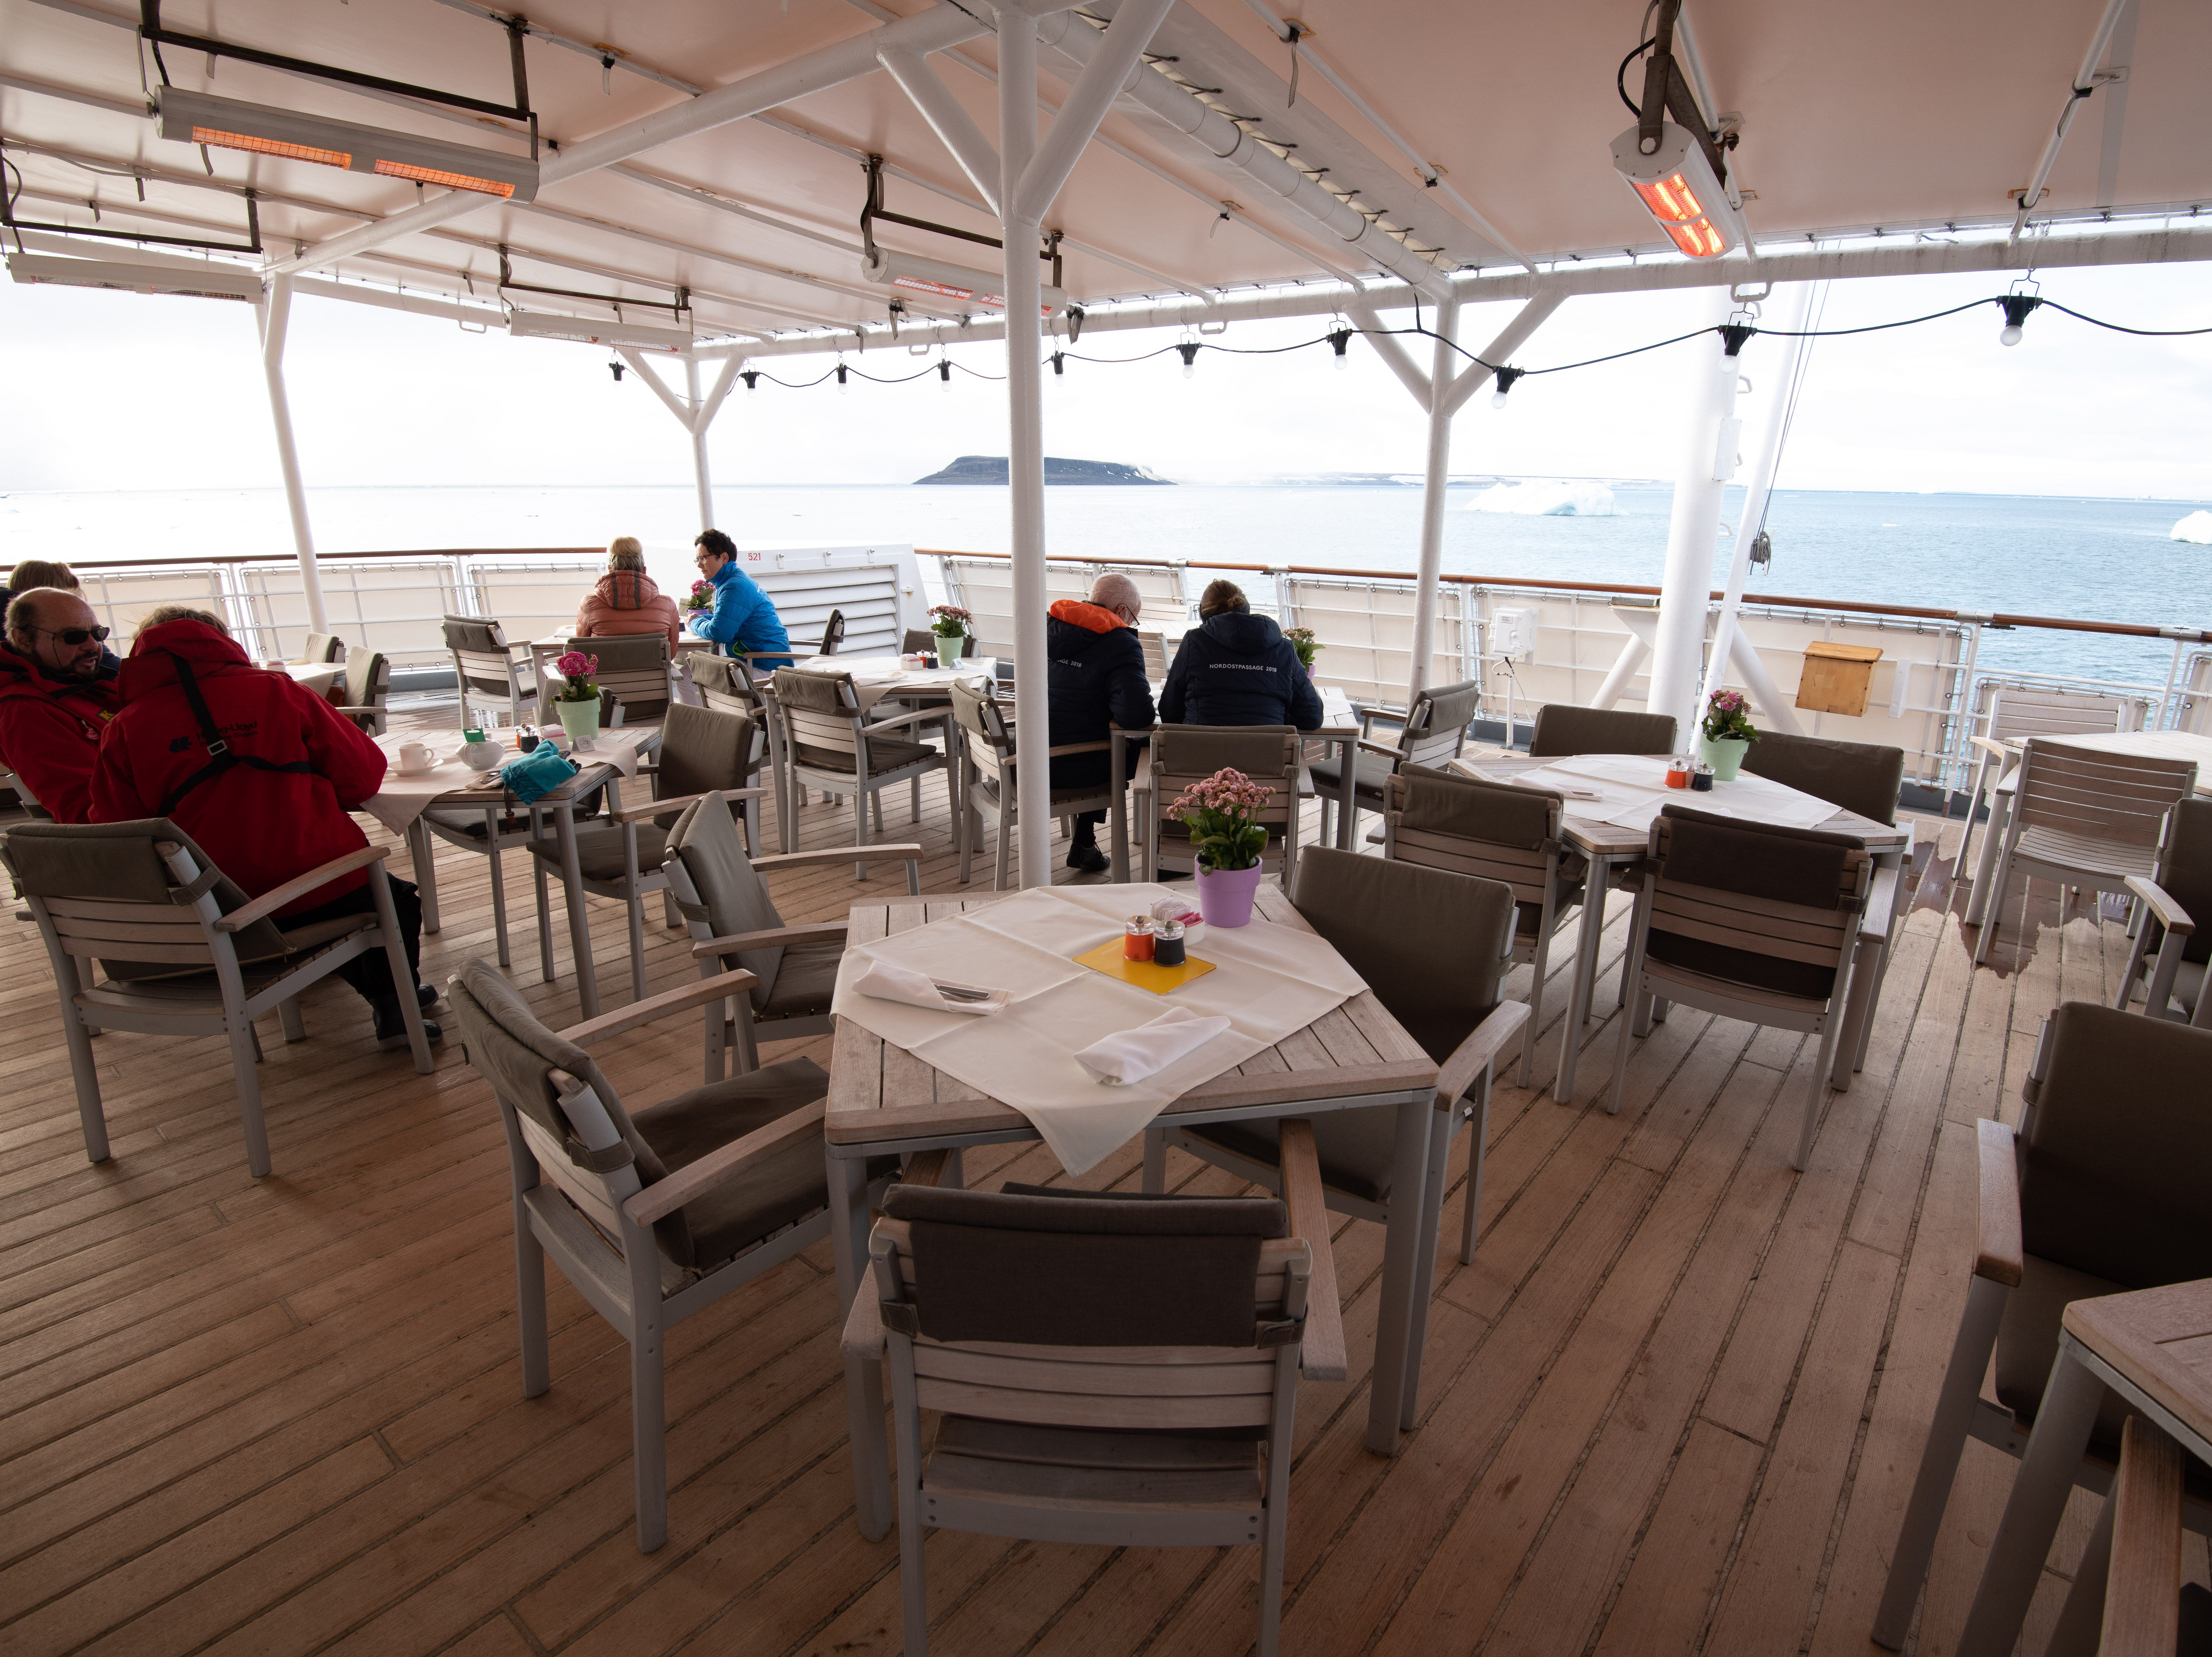 The seating at the Lido Deck is a popular spot at lunchtime.